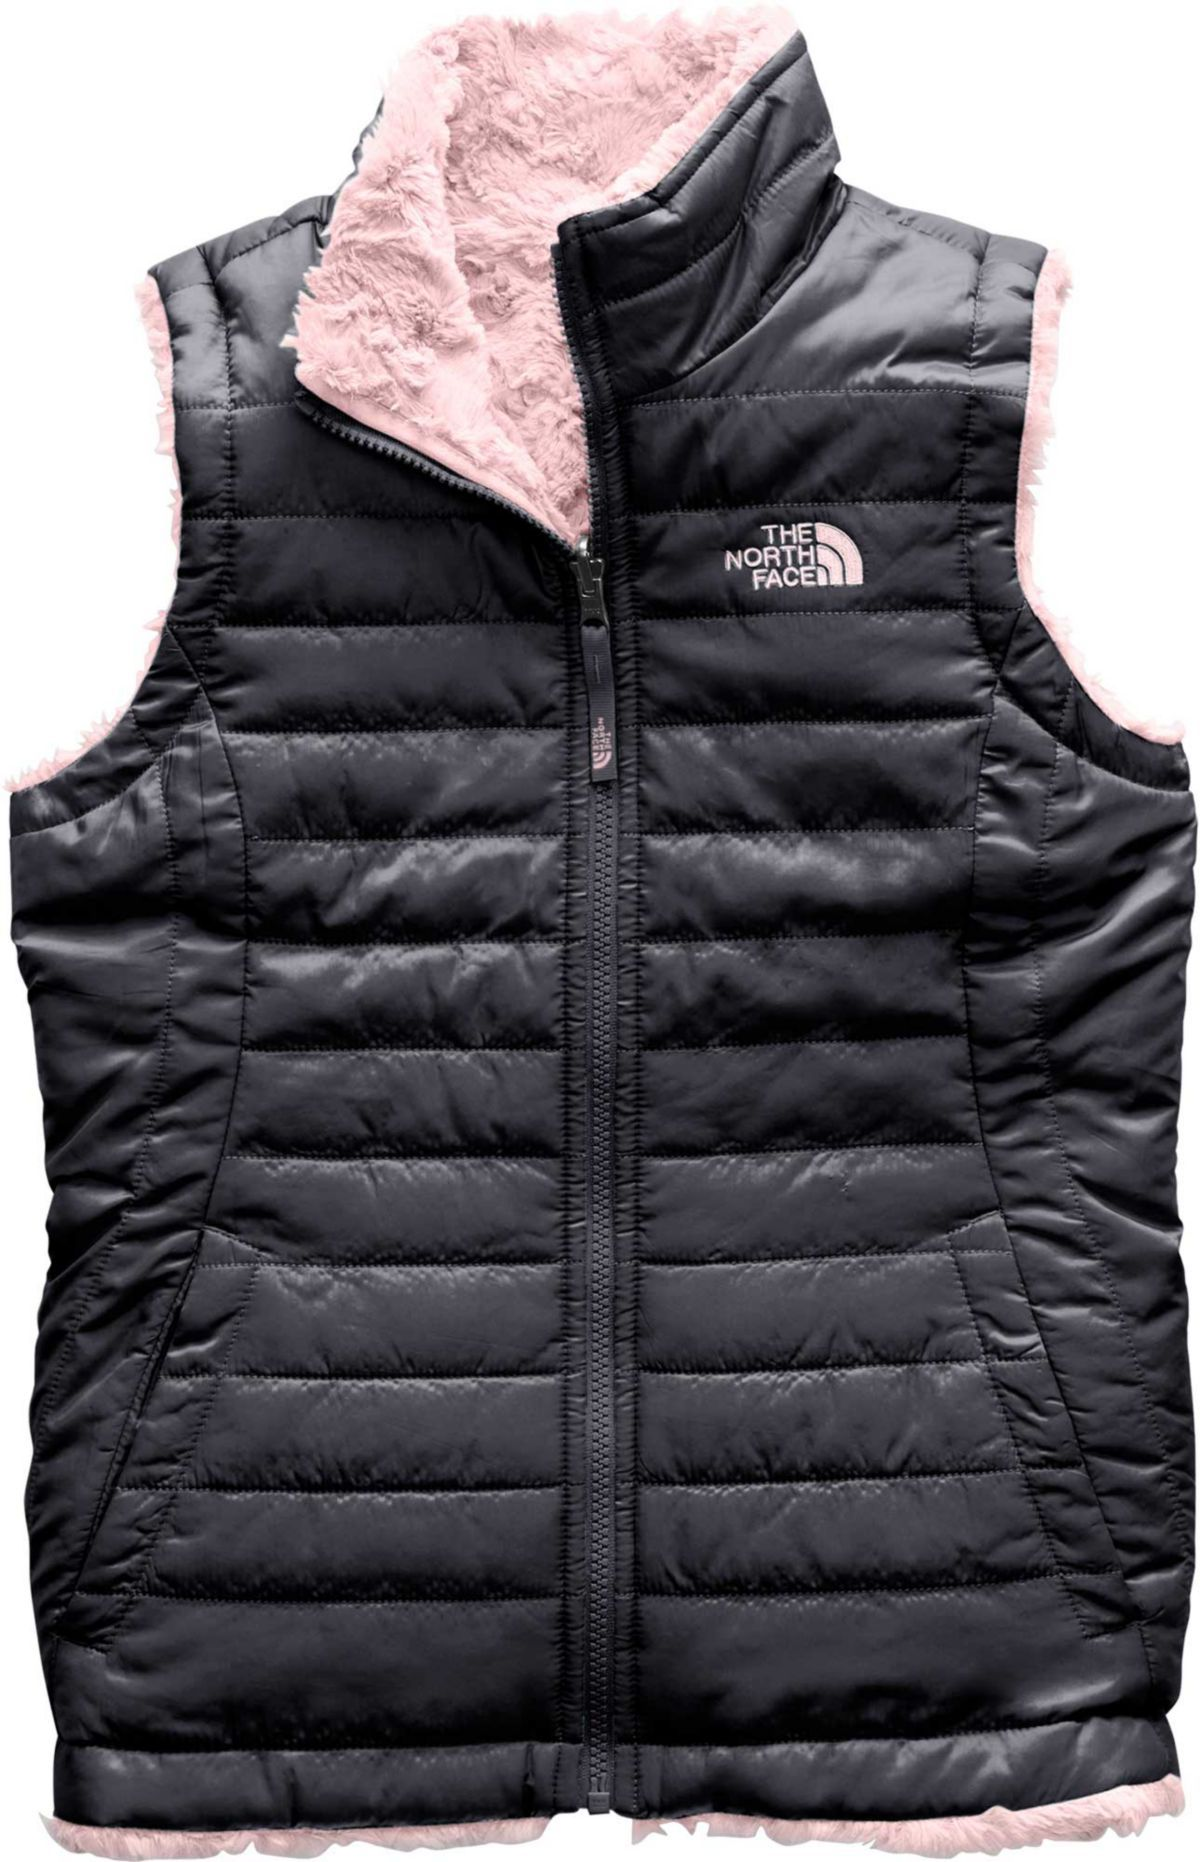 6dadfd20b98 The North Face Girls  Reversible Mossbud Swirl Insulated Vest in ...